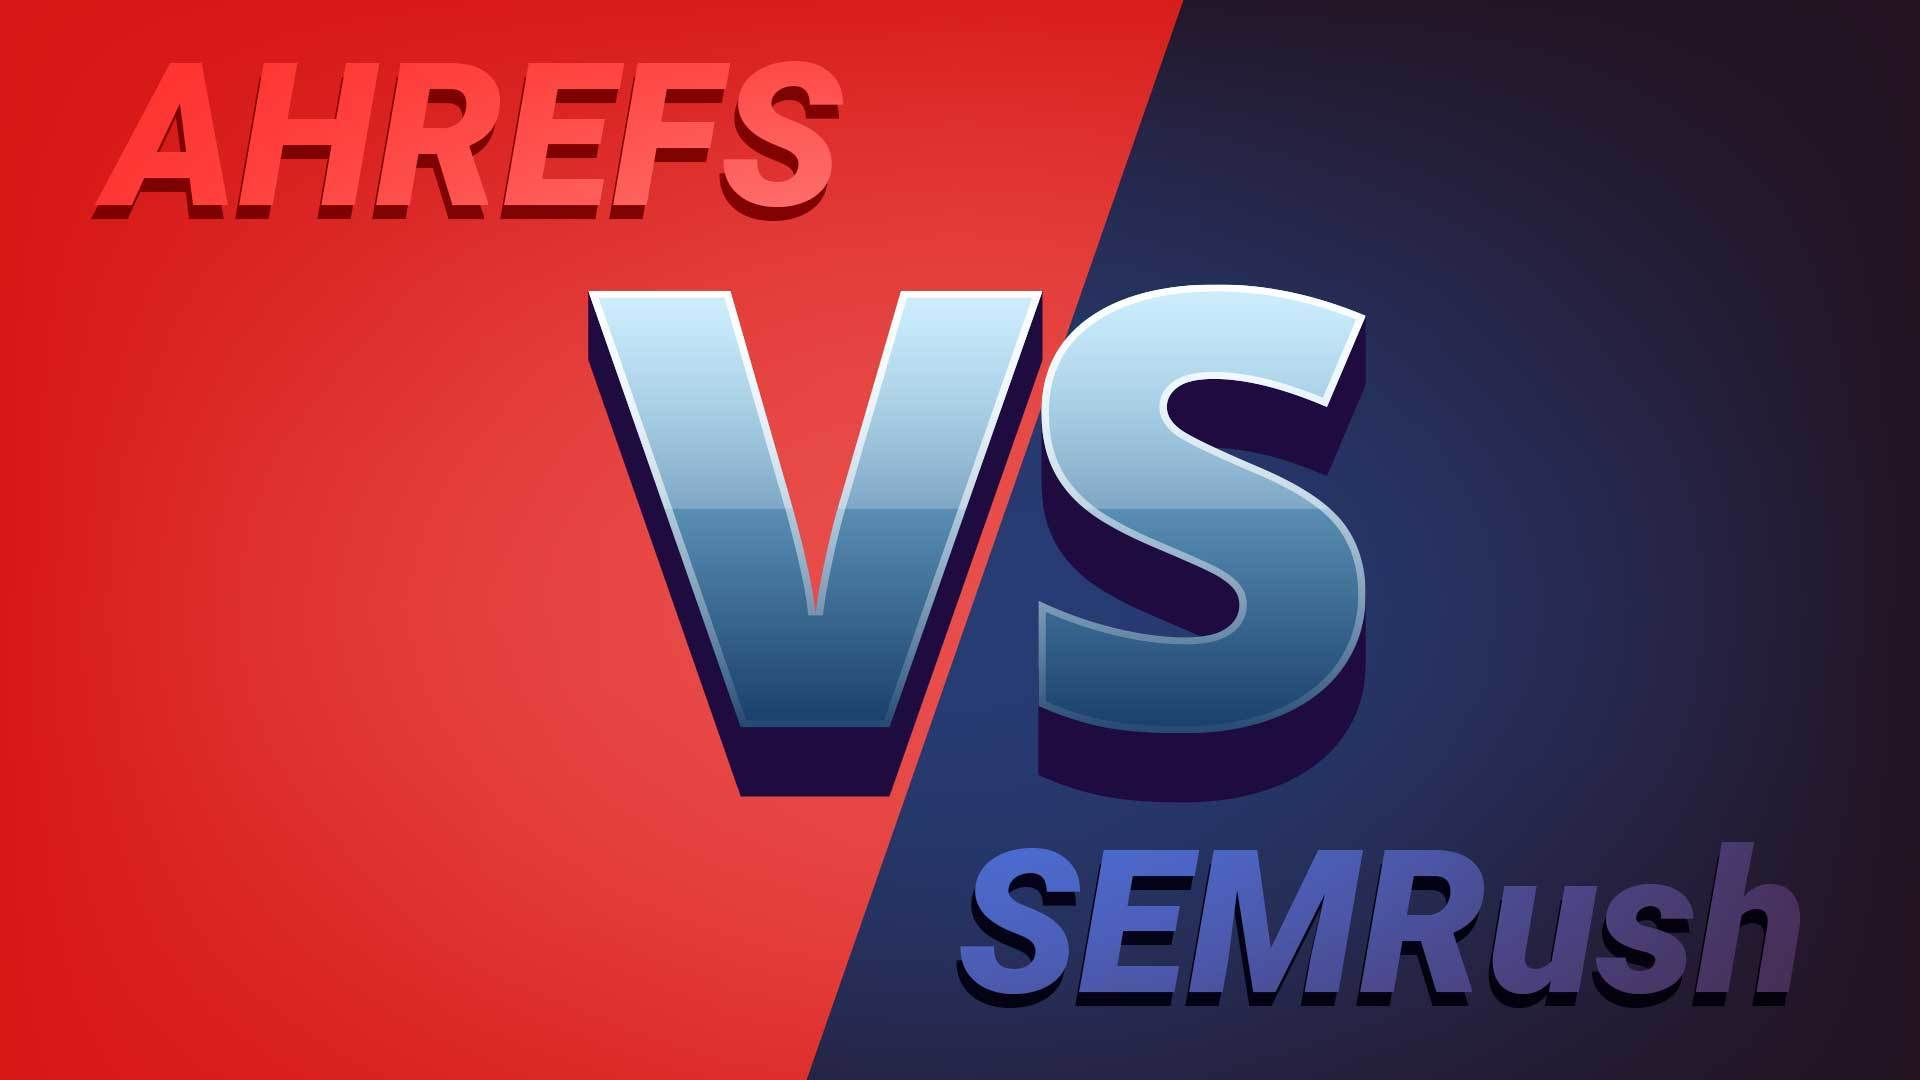 ahrefs vs semrush seo tools